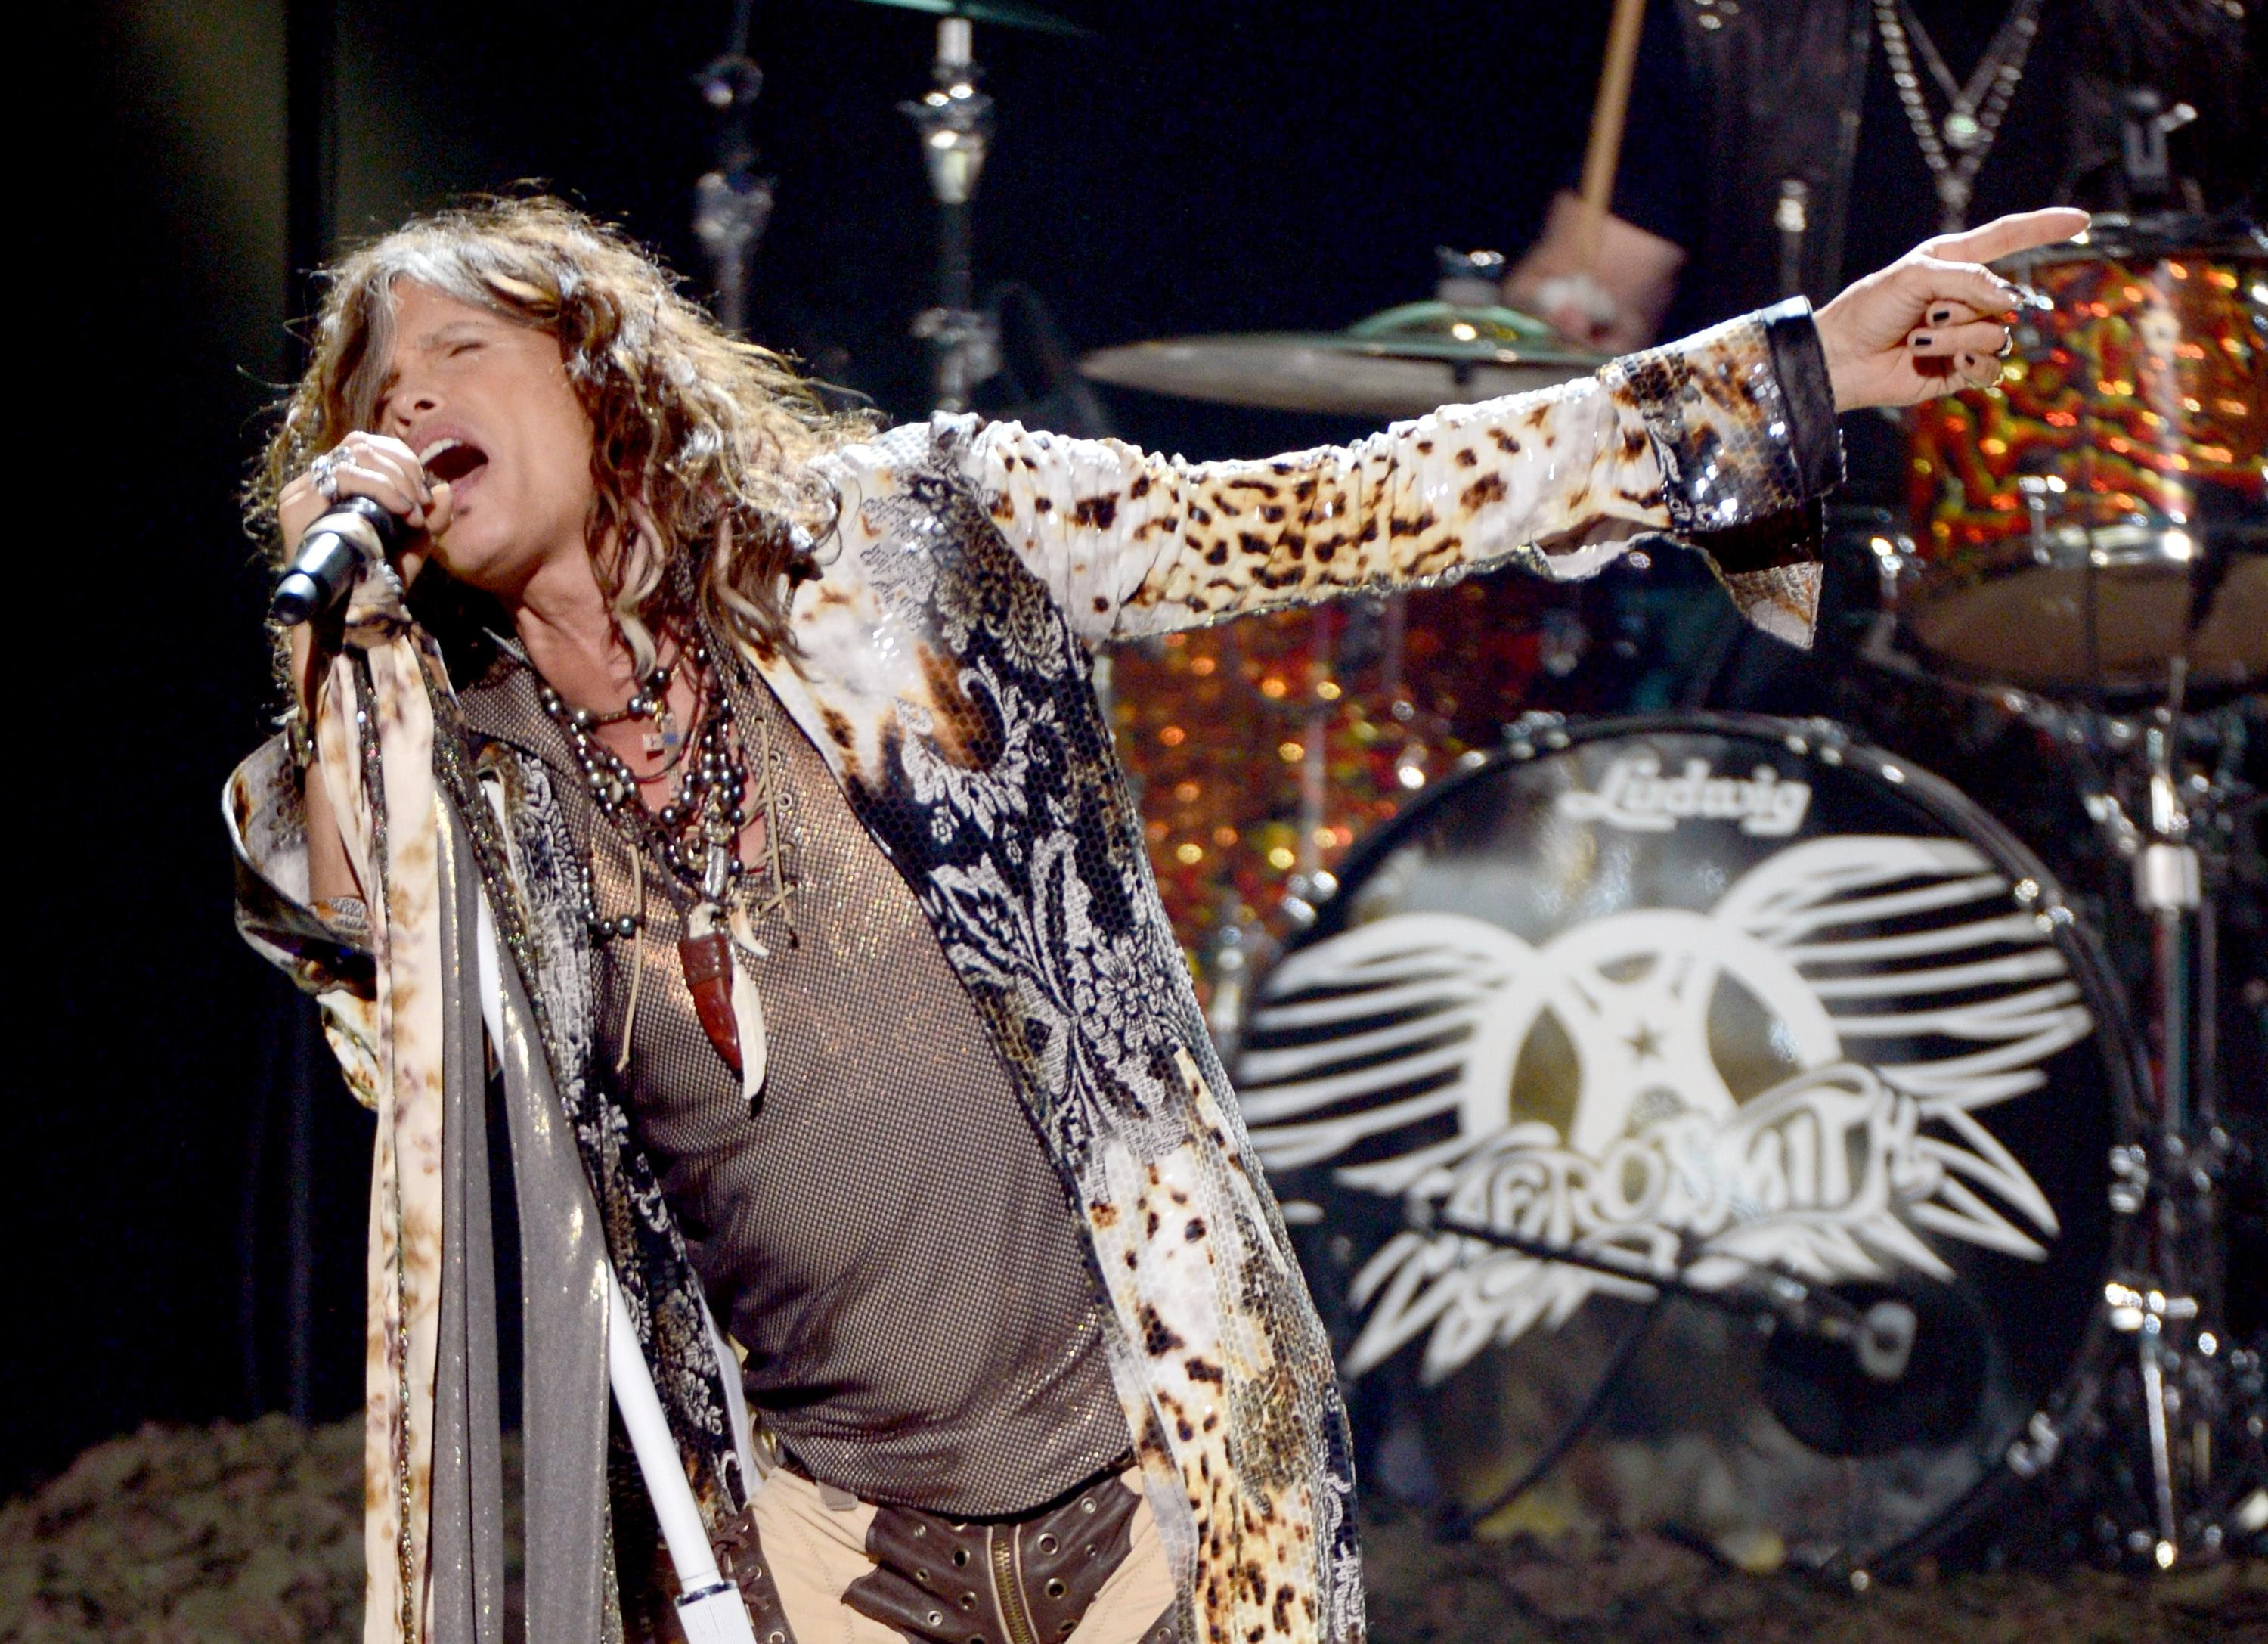 In case you missed it: Watch Aerosmith perform with Run D.M.C. at the 2020 Grammy's